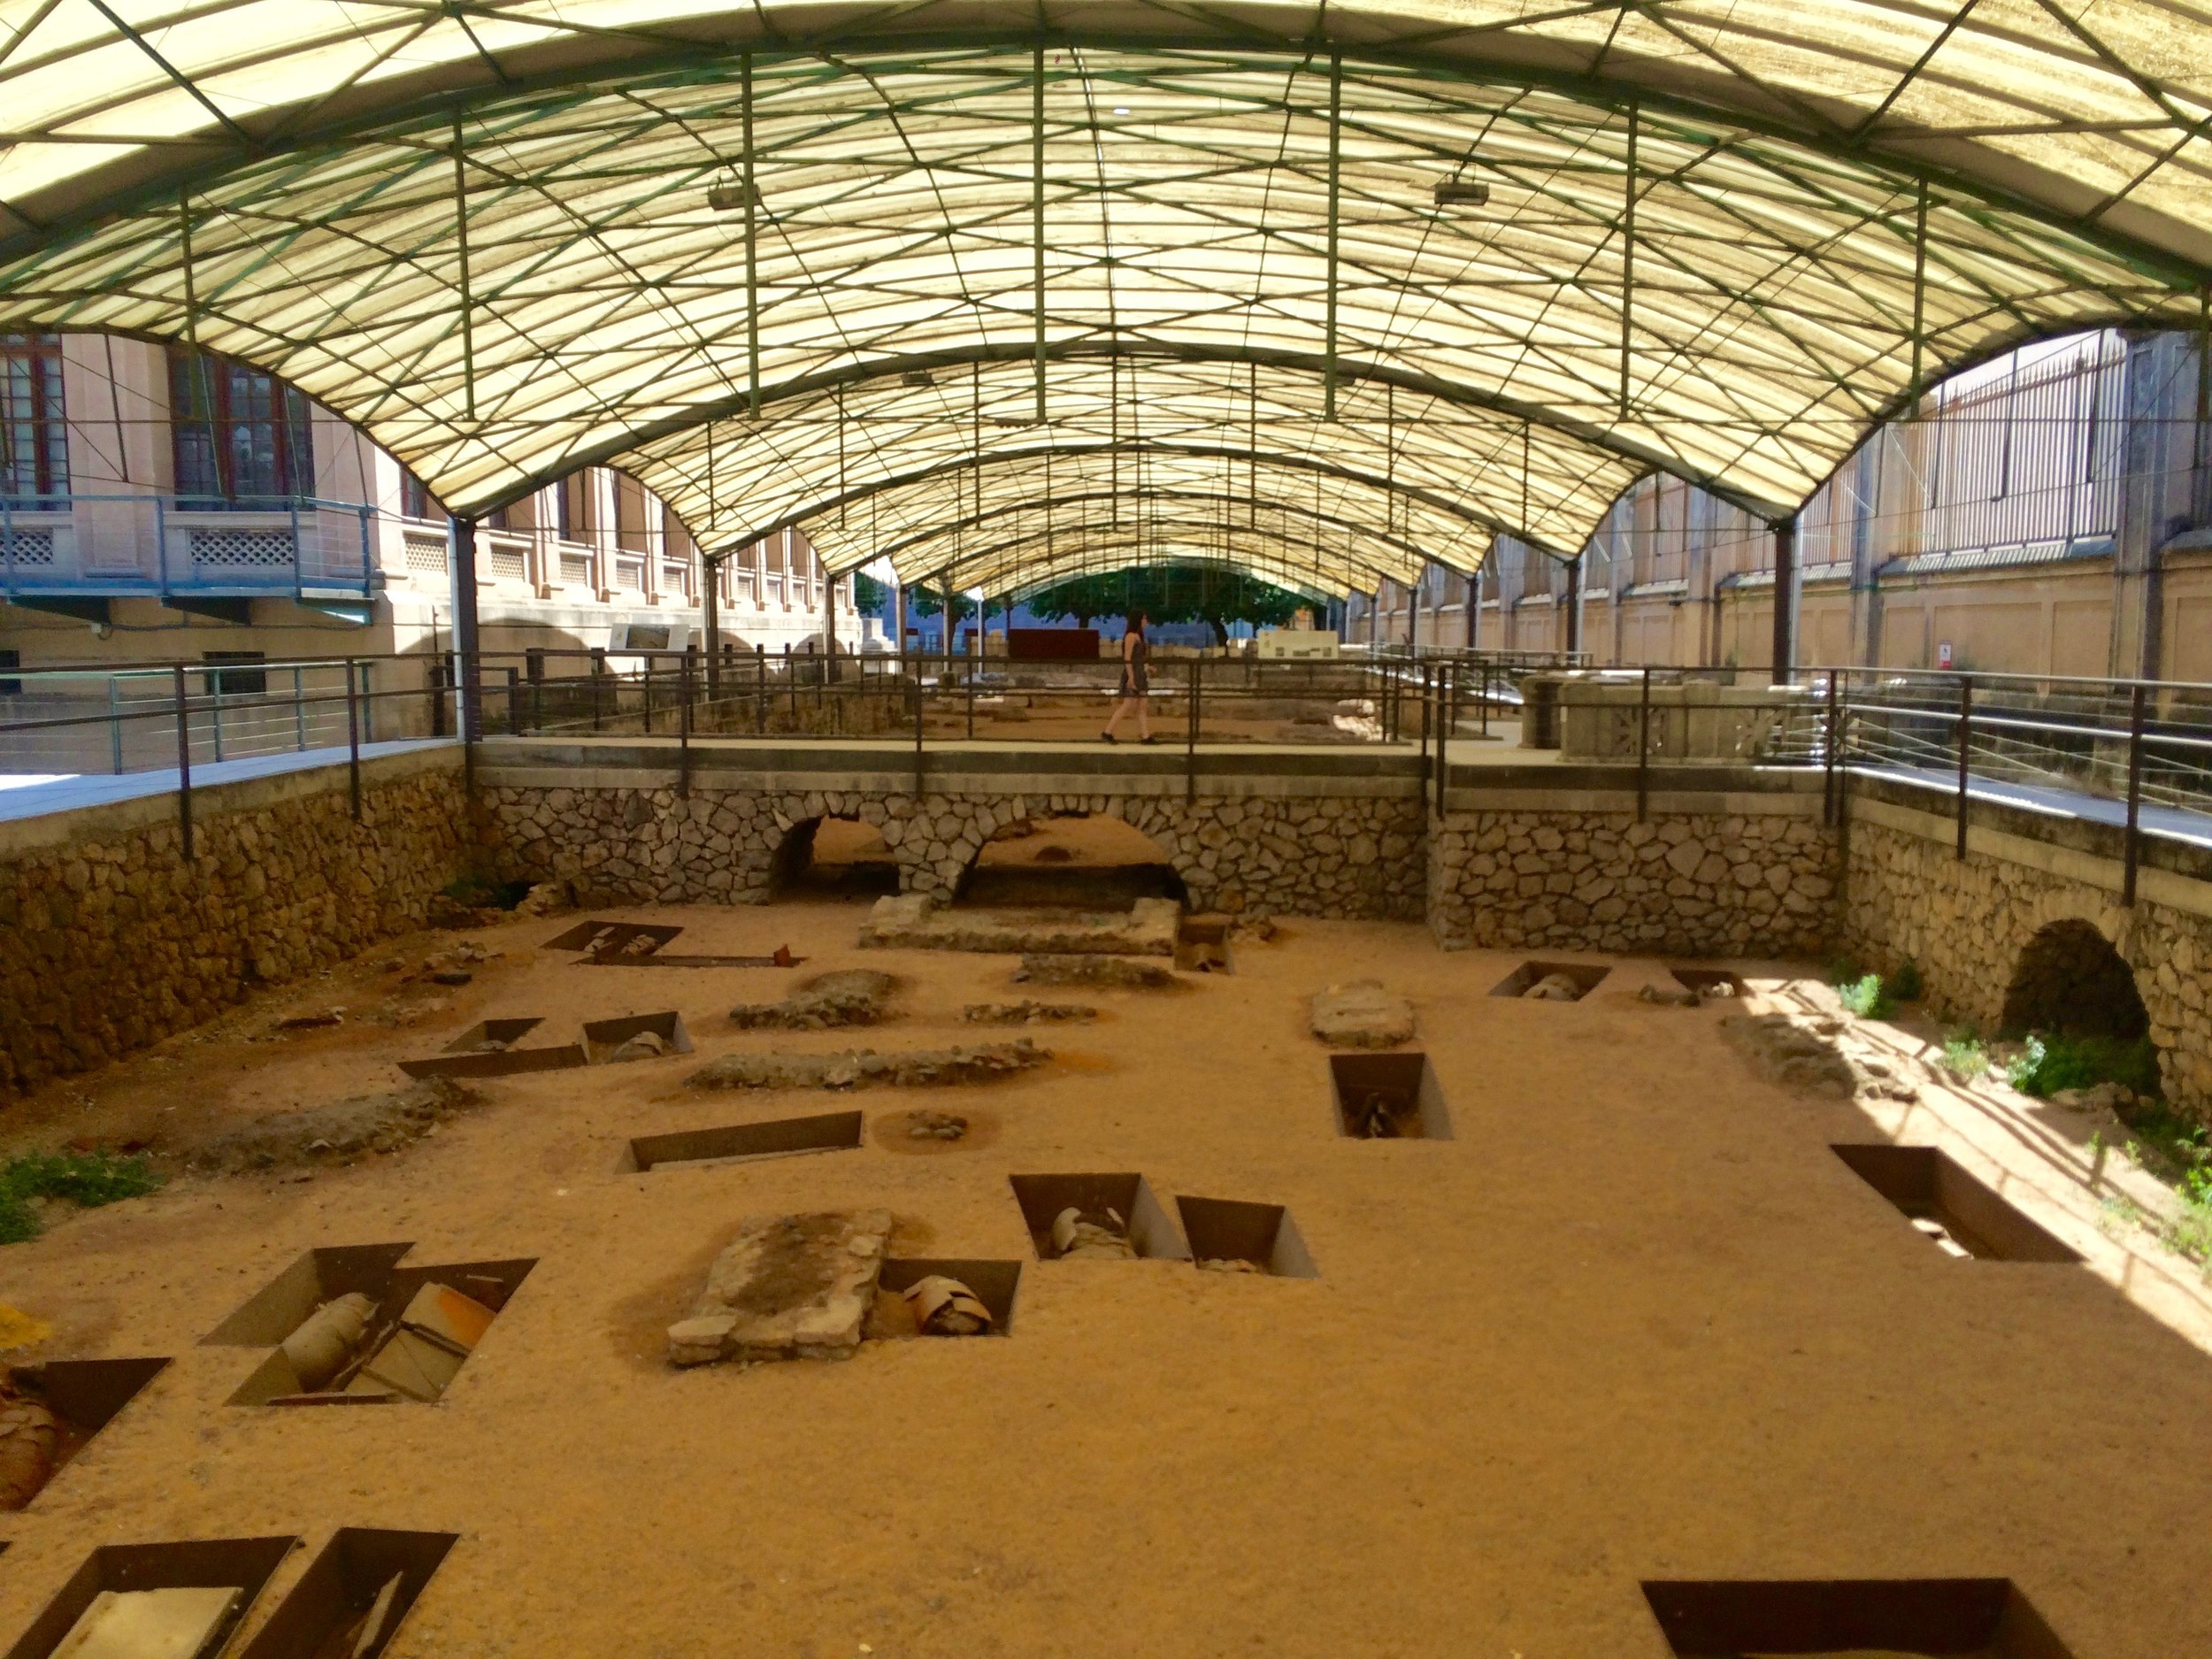 The cemetery has 2,051 tombs in a wide diversity of styles, making it the most important early Christian necropolis in the Western Mediterranean.